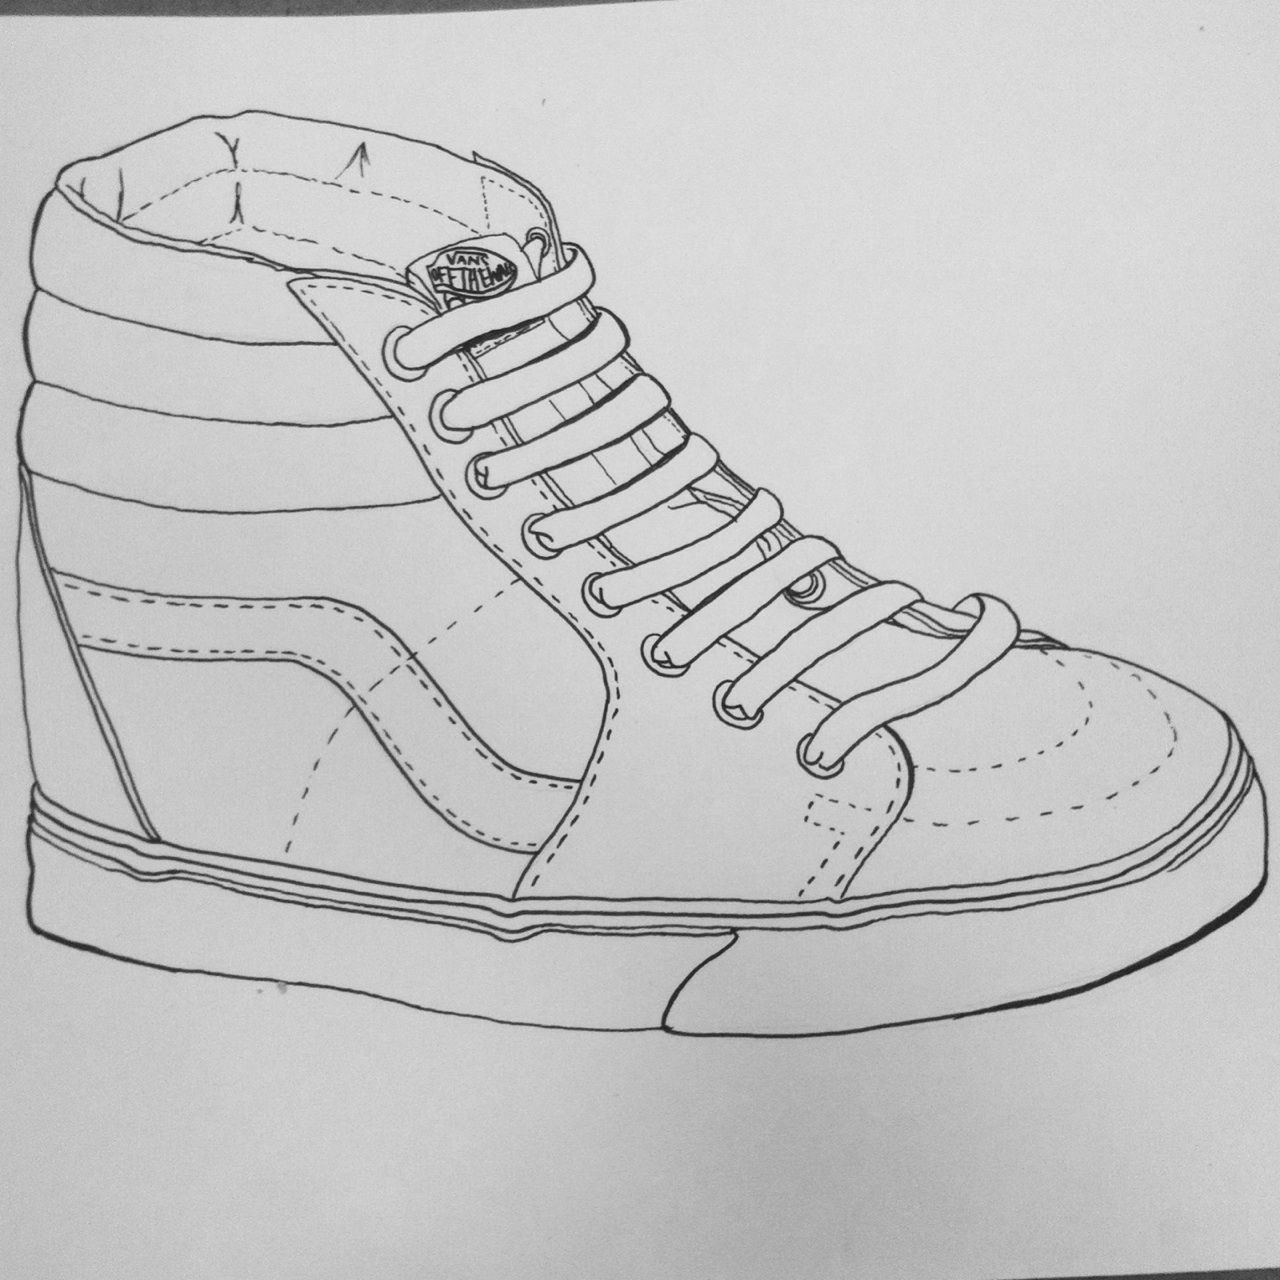 drawing of shoes image tennis shoe sketch at paintingvalleycom explore drawing of shoes image